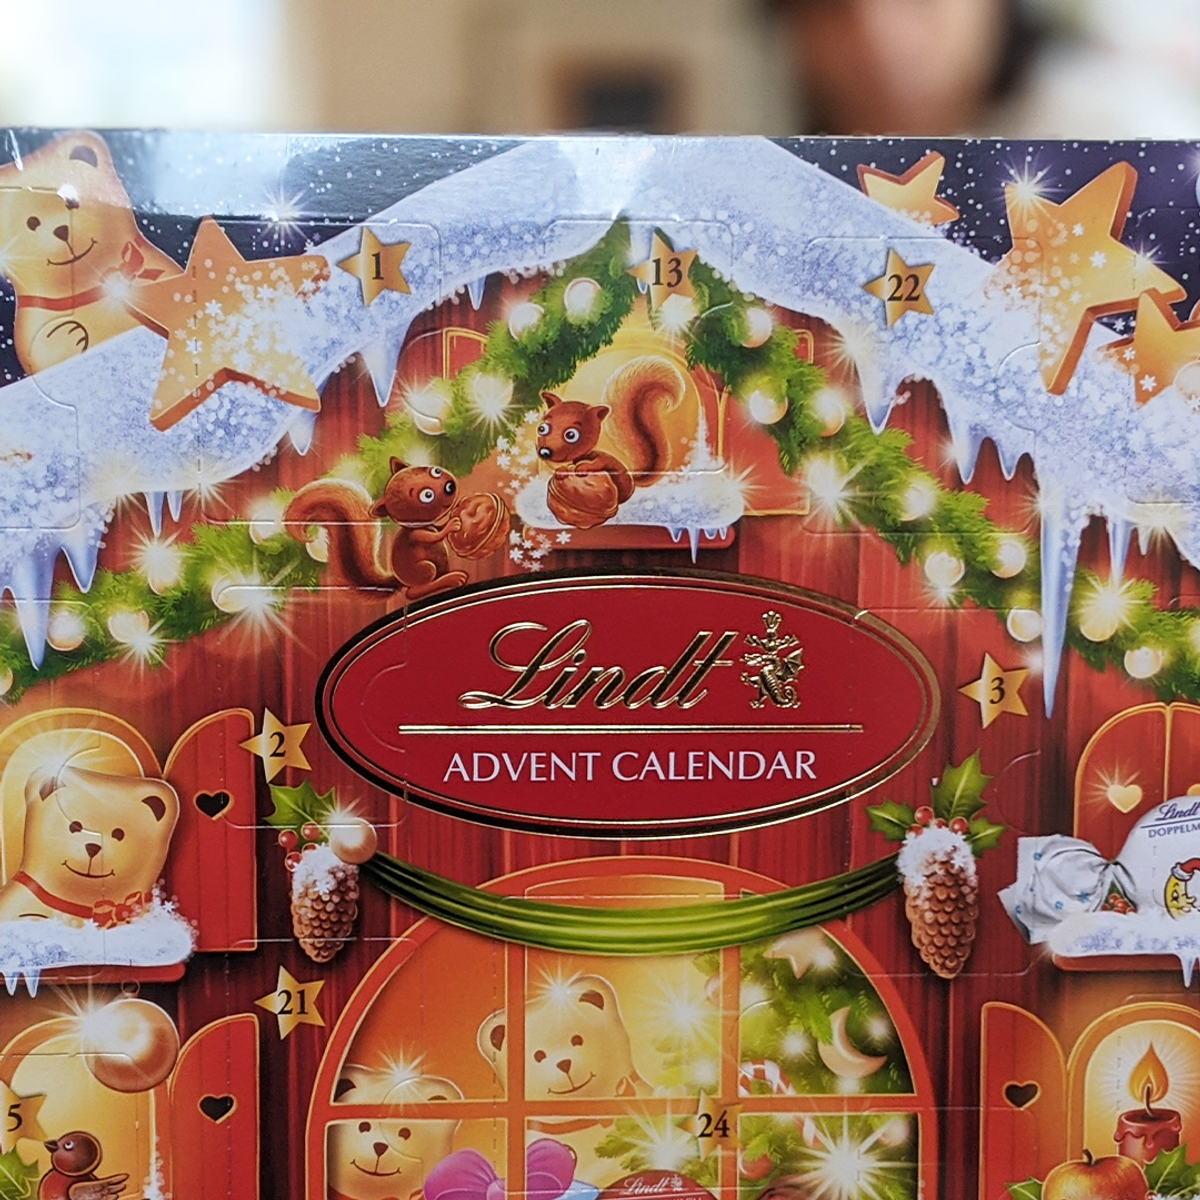 Lindt Teddy adventskalender 2020